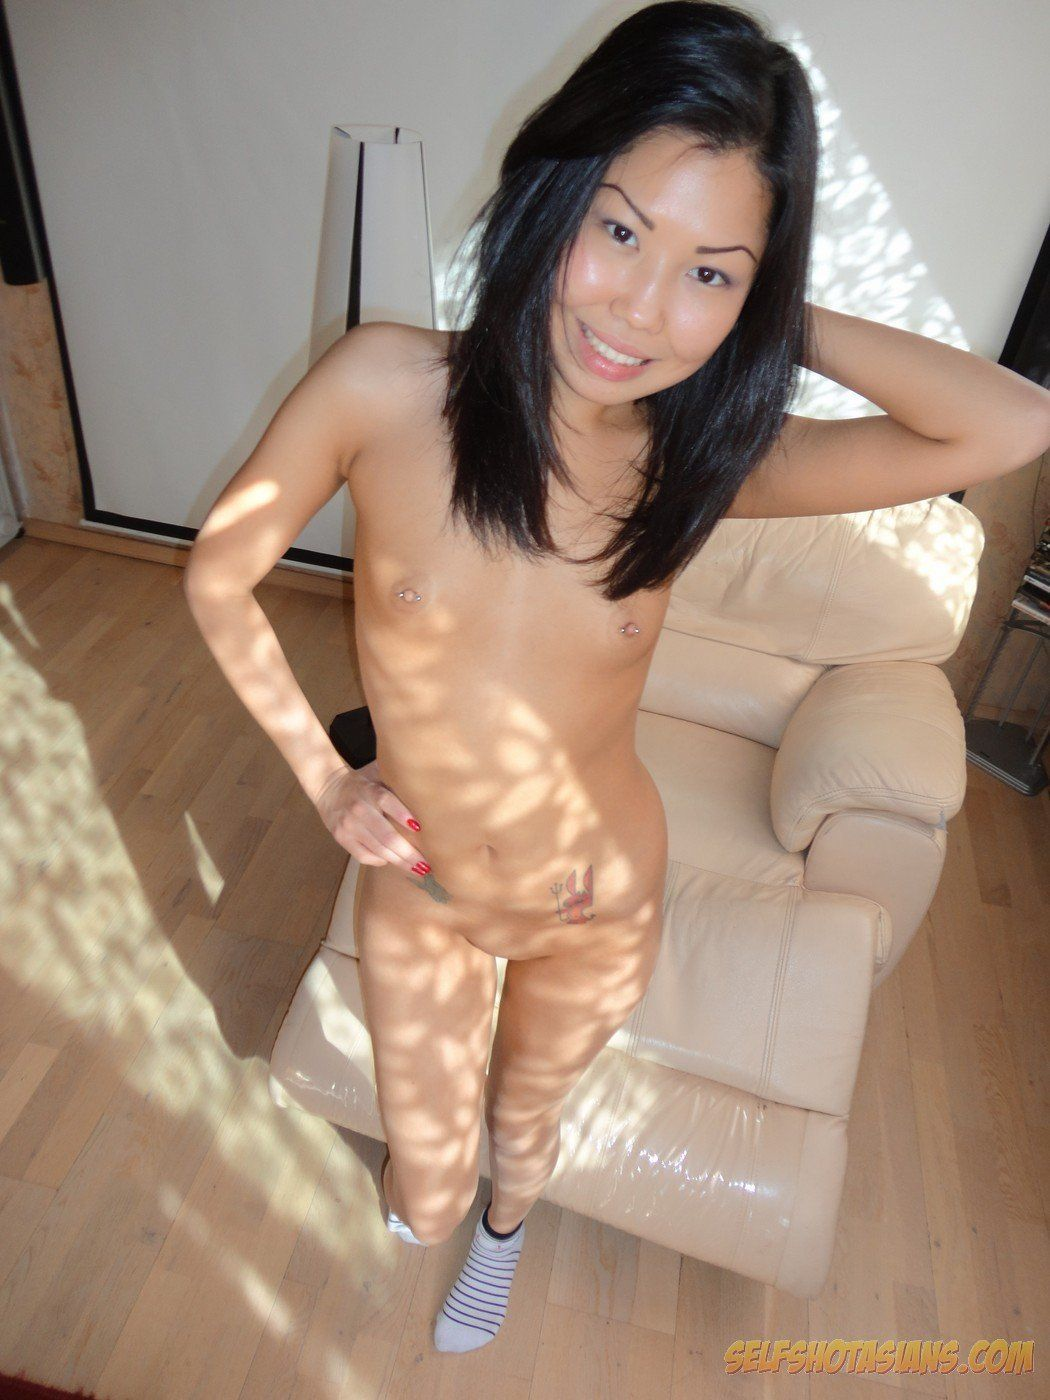 Babe Hiden Cam Tenn Porn young japanese nudist photo - quality porn. comments: 1